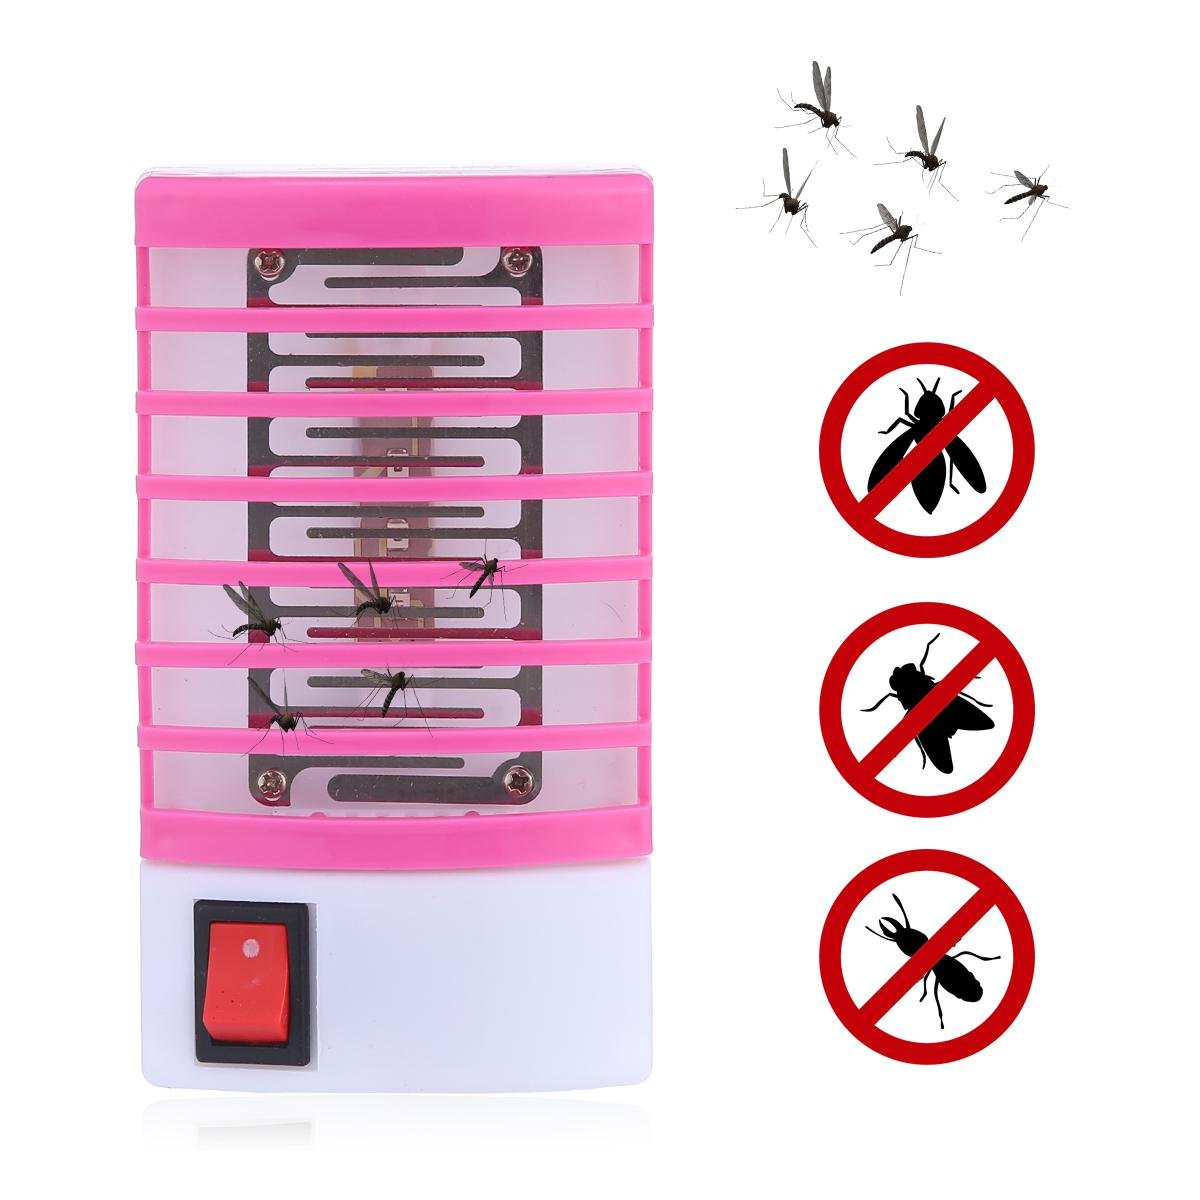 110V Electronic Mosquito Killer Night Lamp, Teepao Mini Mosquito Repellent Zapper Repeller with LED Light Non-Radiative and Non-Toxic,Built in Fly Insect Flying Pests Bug Trap for Indoor Outdoor